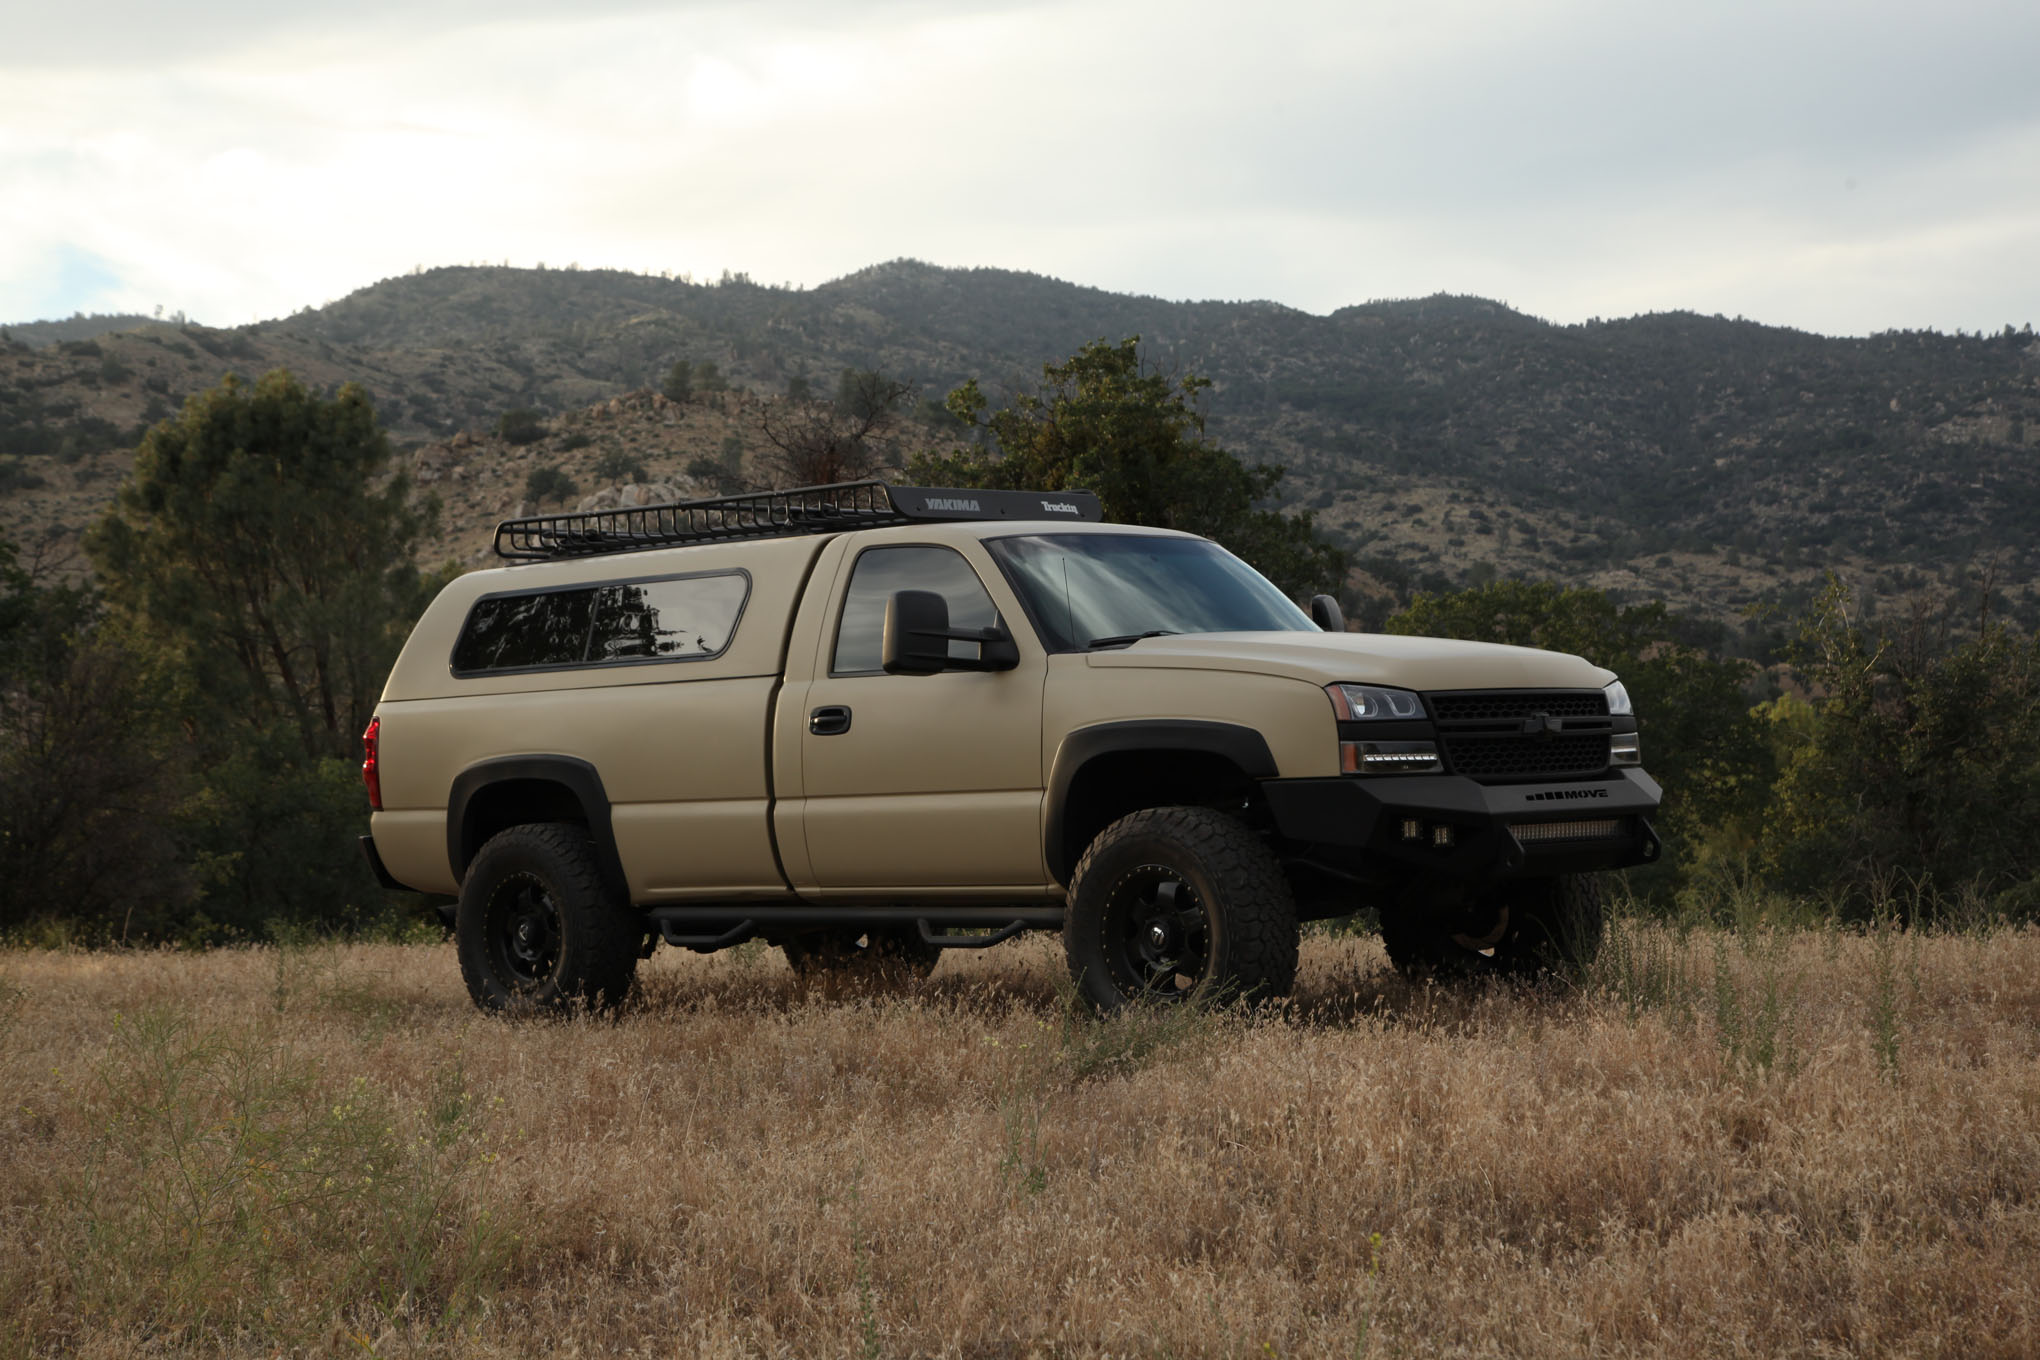 2003 Chevy Silverado Overland Build Final Feature Finished Build